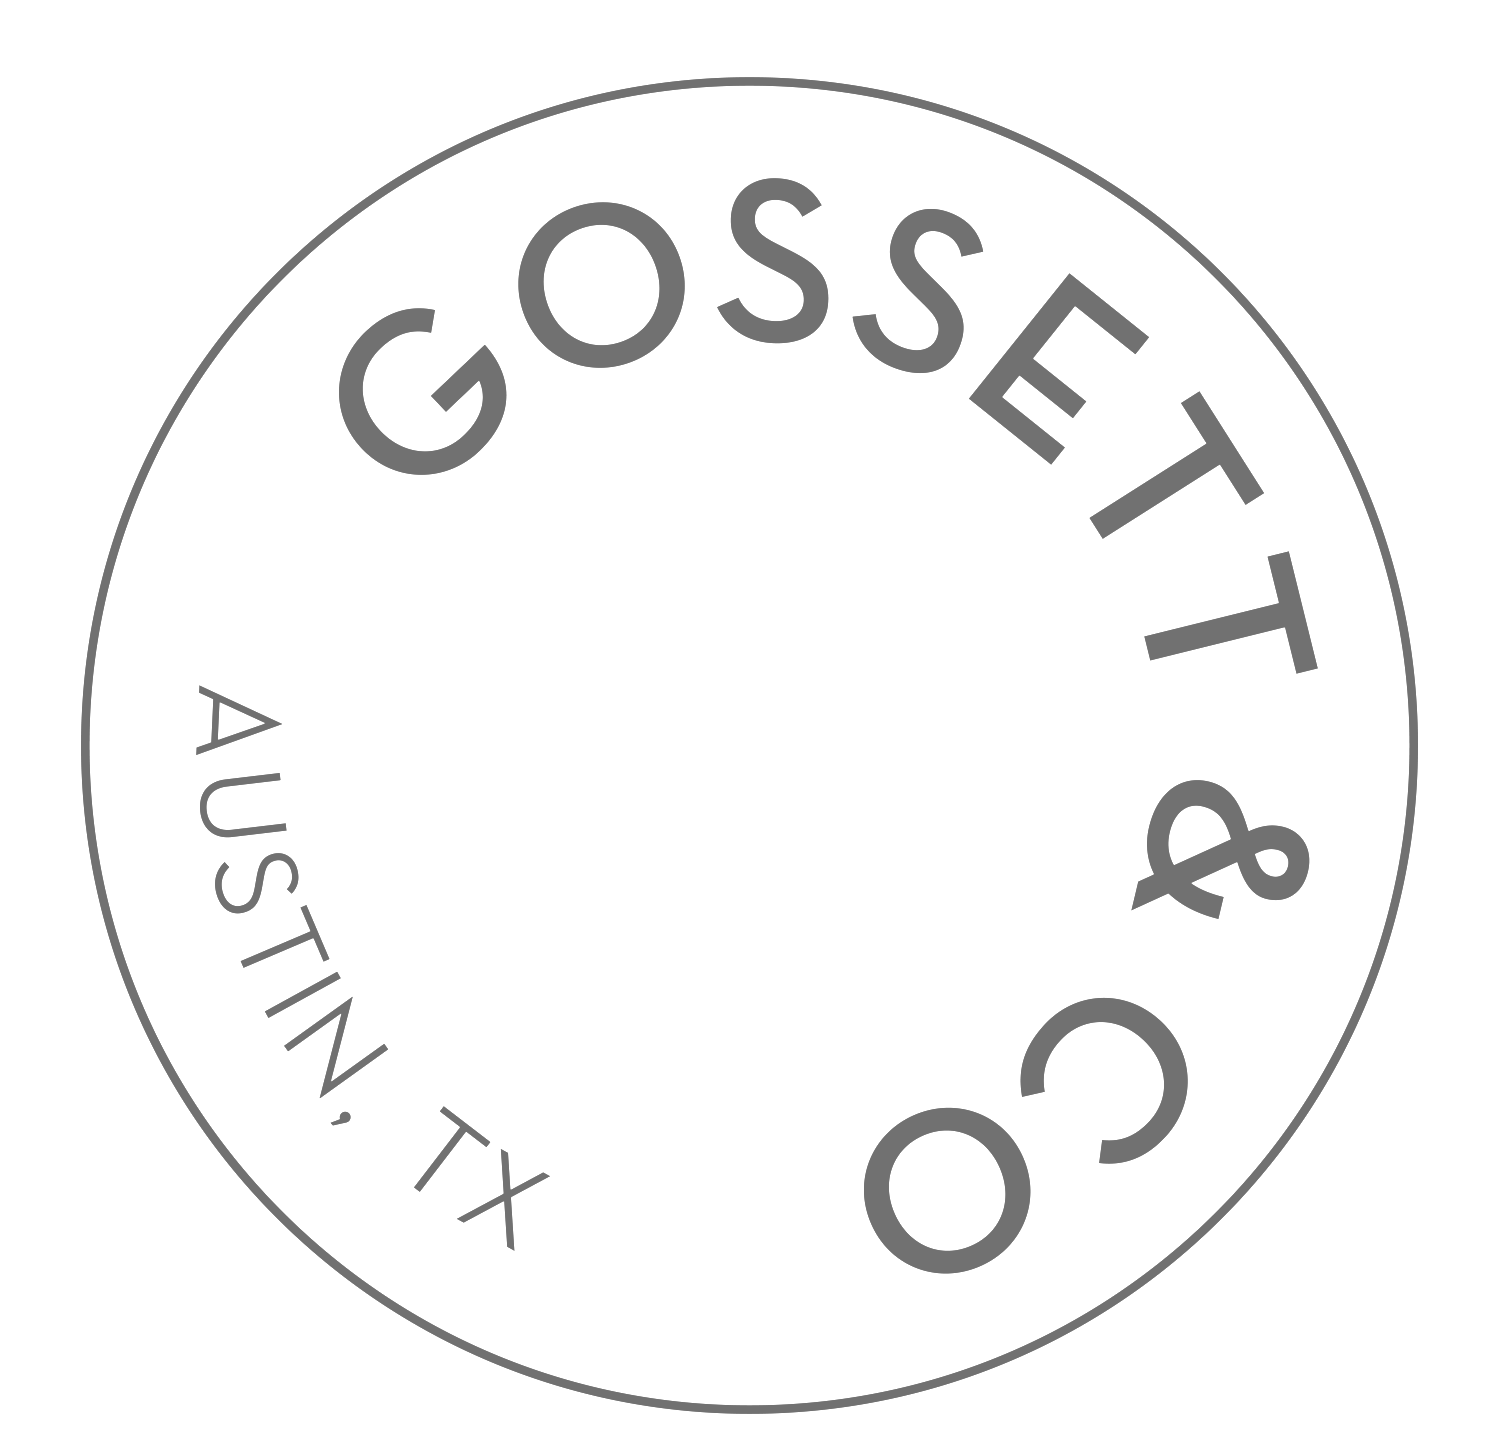 Gossett and Company, LLC